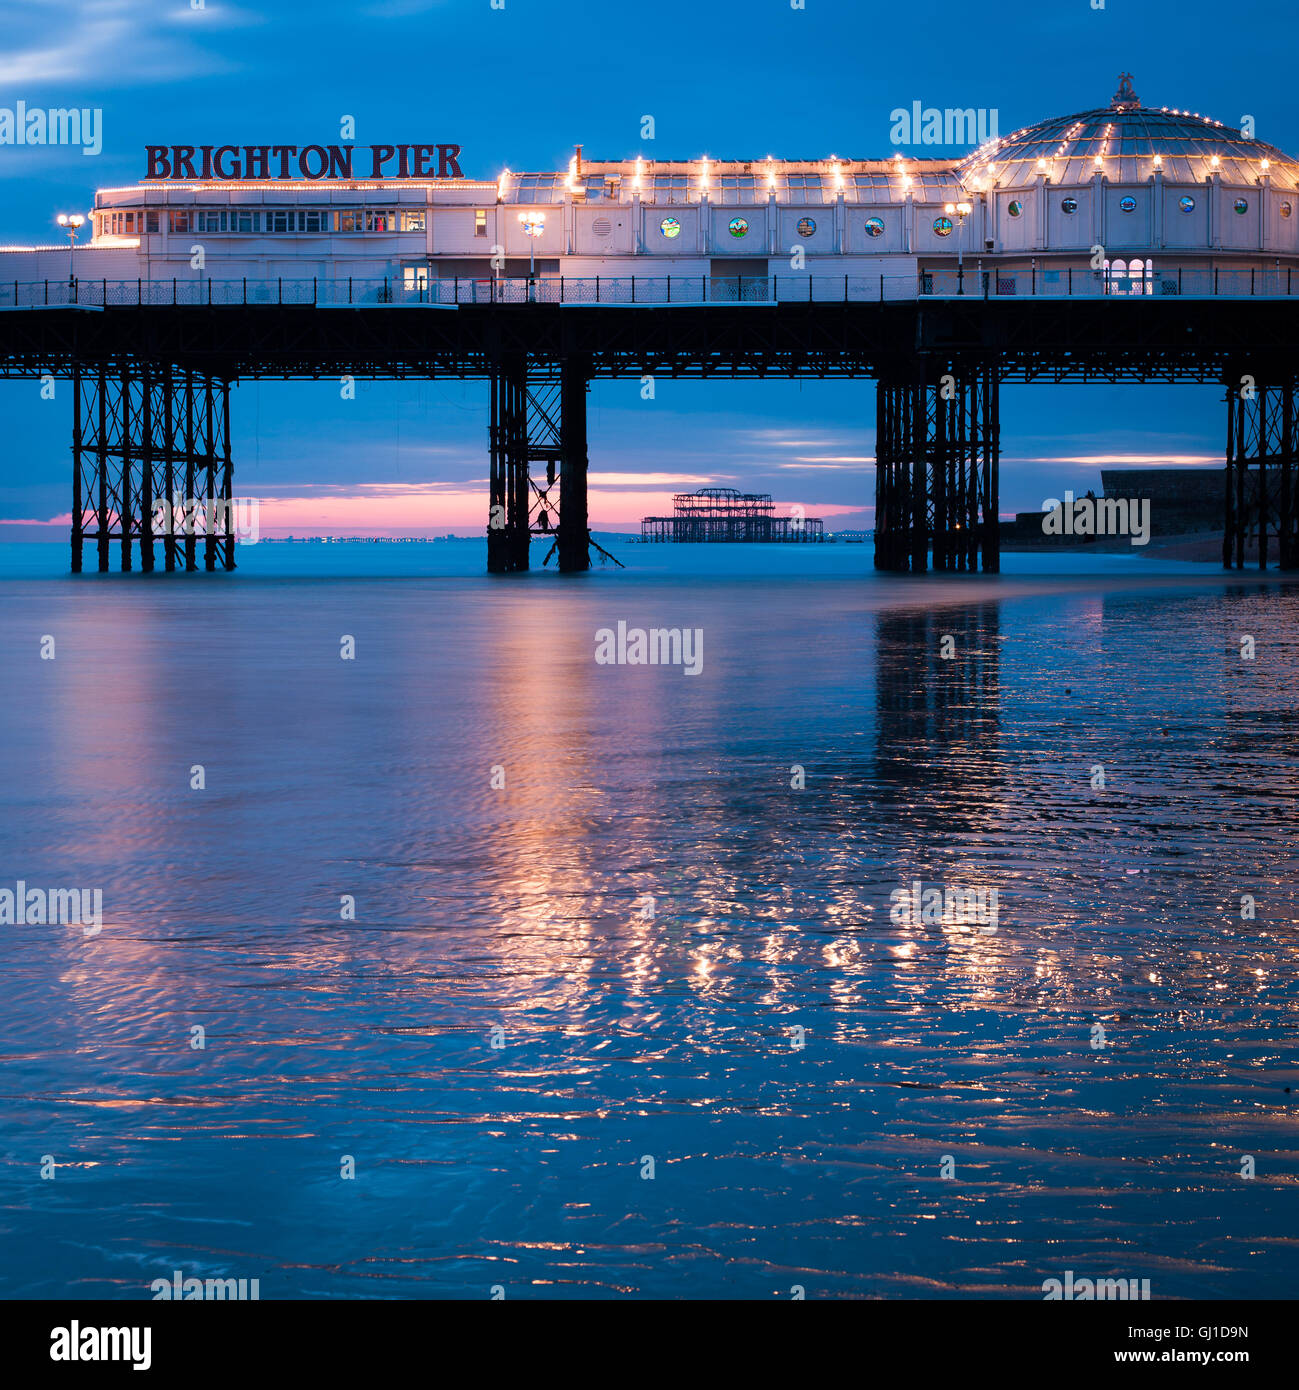 Brighton Pier at dusk reflects in the wet sands of low tide. In the distance the old West Pier can be seen. - Stock Image